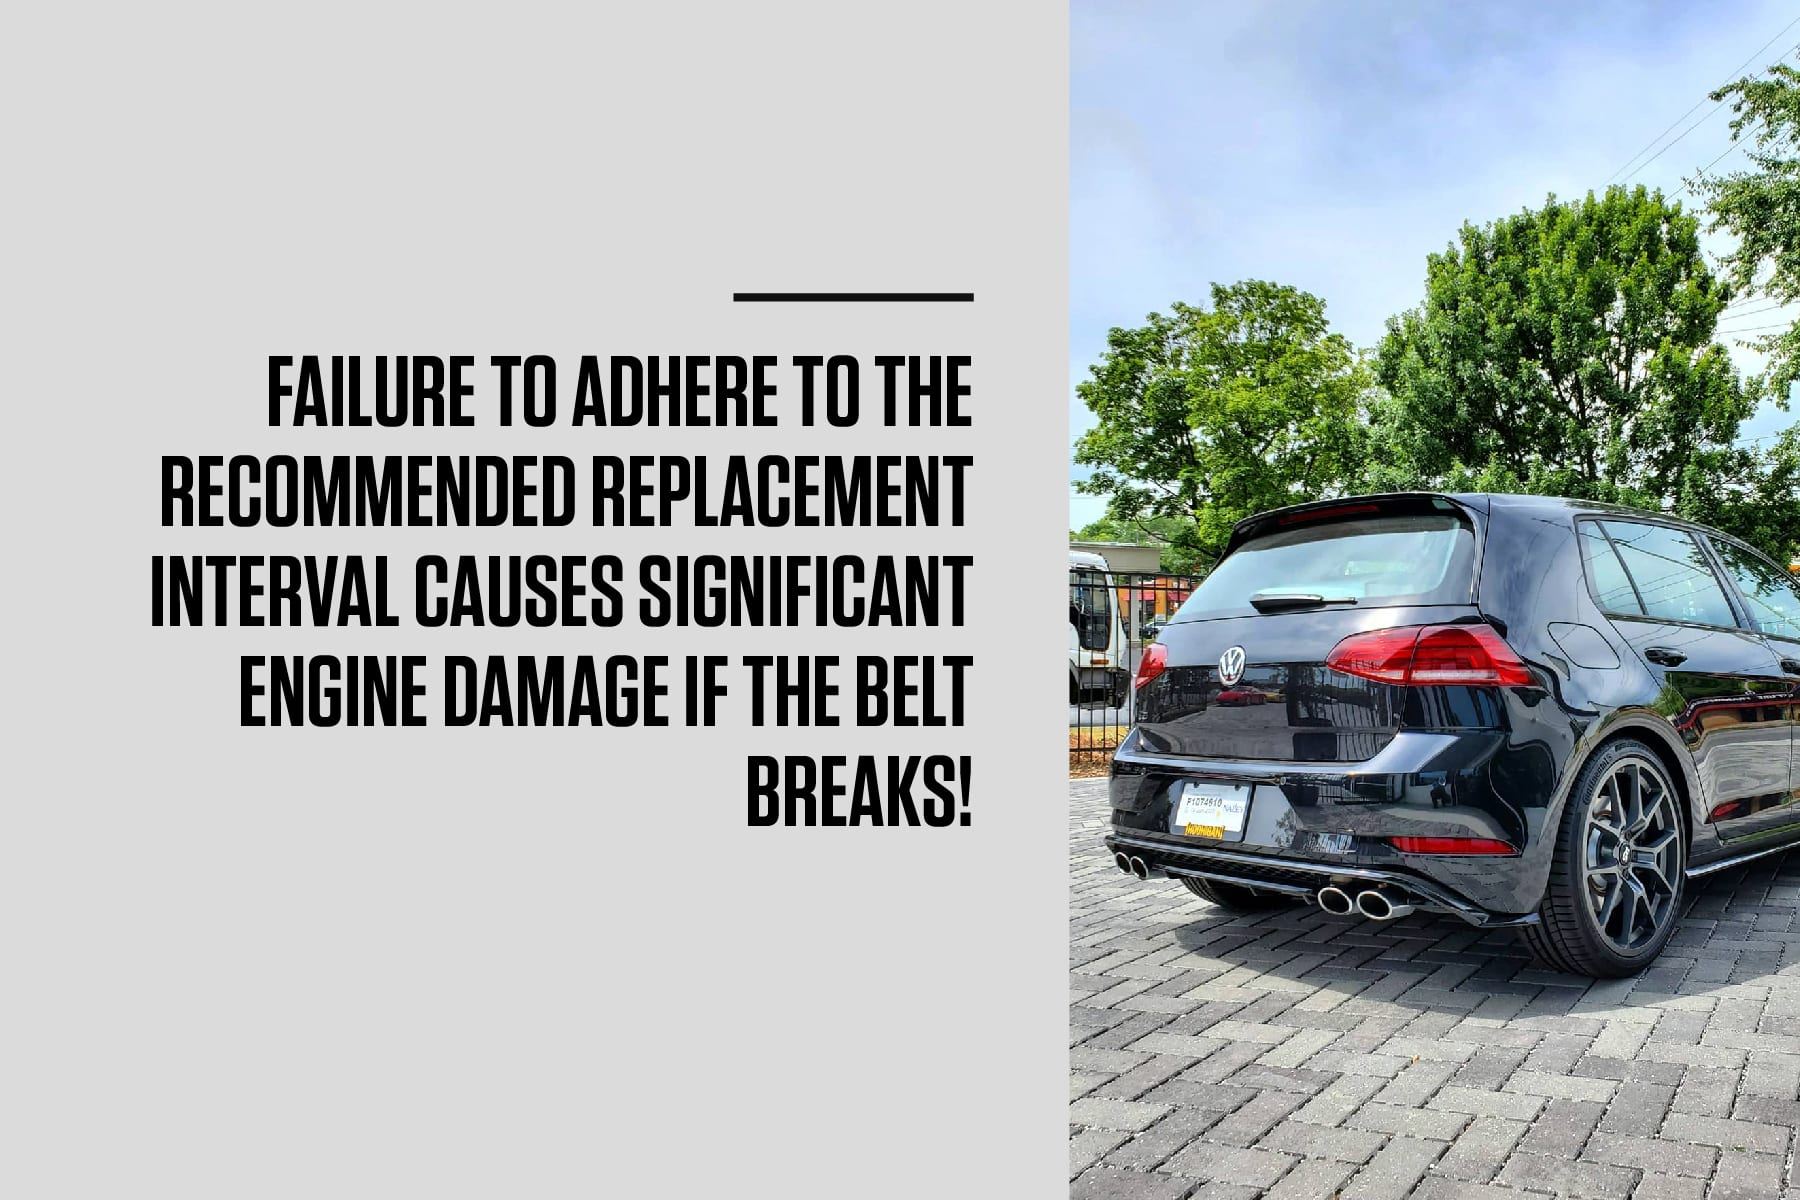 not following correct maintenance can cause significant engine damage